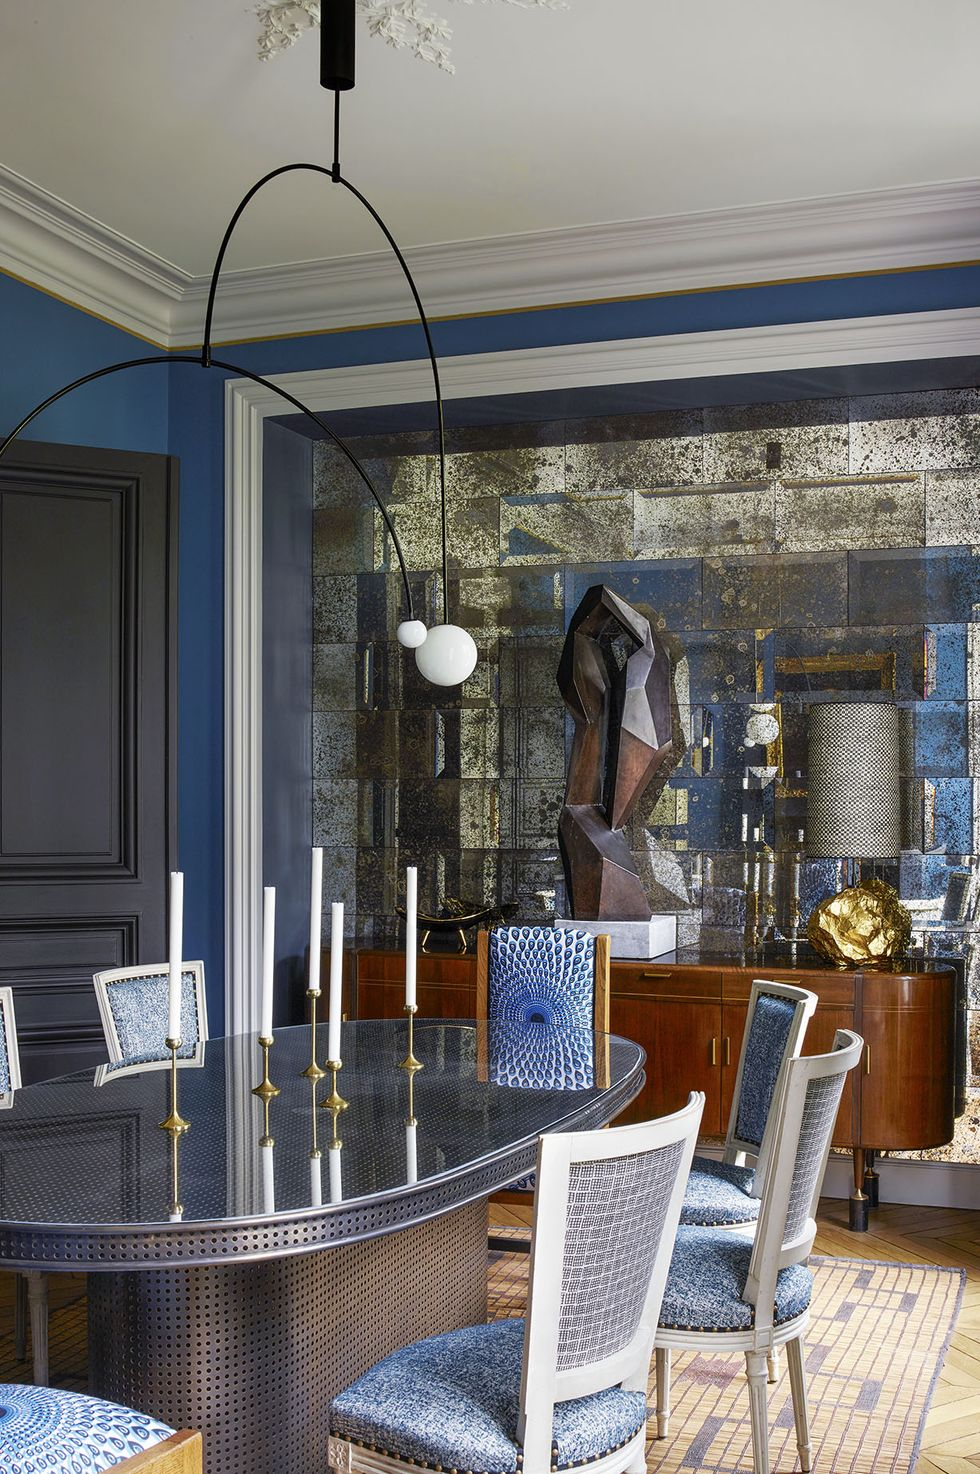 Mdining-room-light-fixtures-10-1502211611